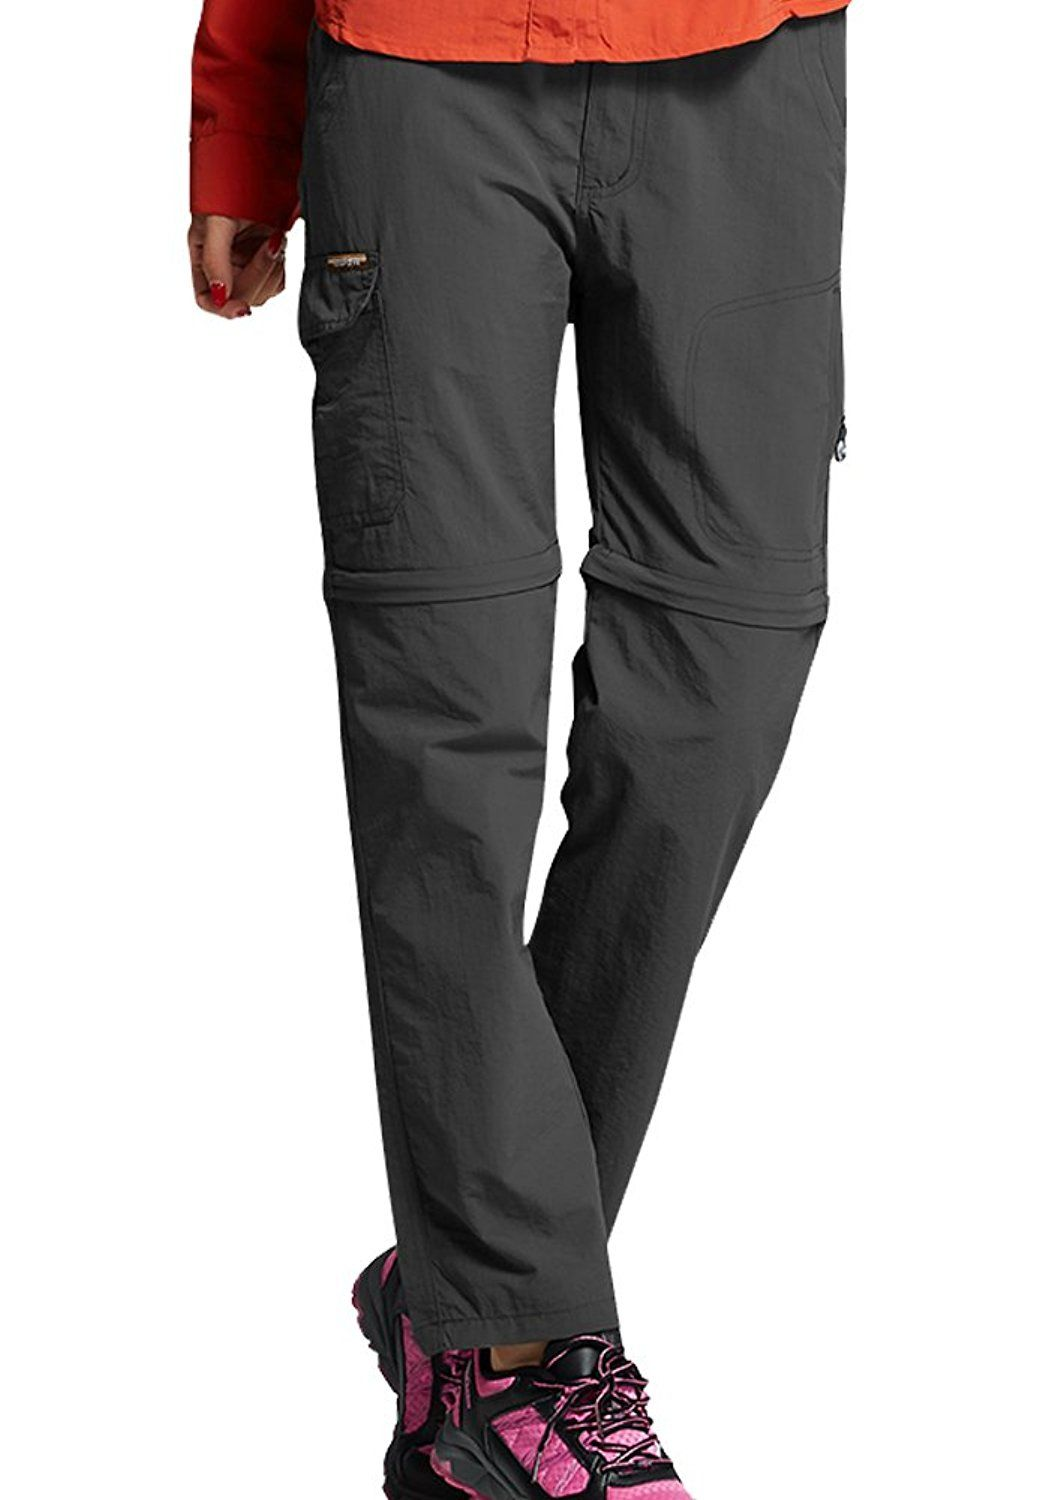 5f4bffbf14a Toomett Women s Outdoor Water-Resistant Lightweight Zip Off Quick Dry  Hiking Convertible Fishing Cargo Pants  4409 8022 – Shop2online best  woman s fashion ...